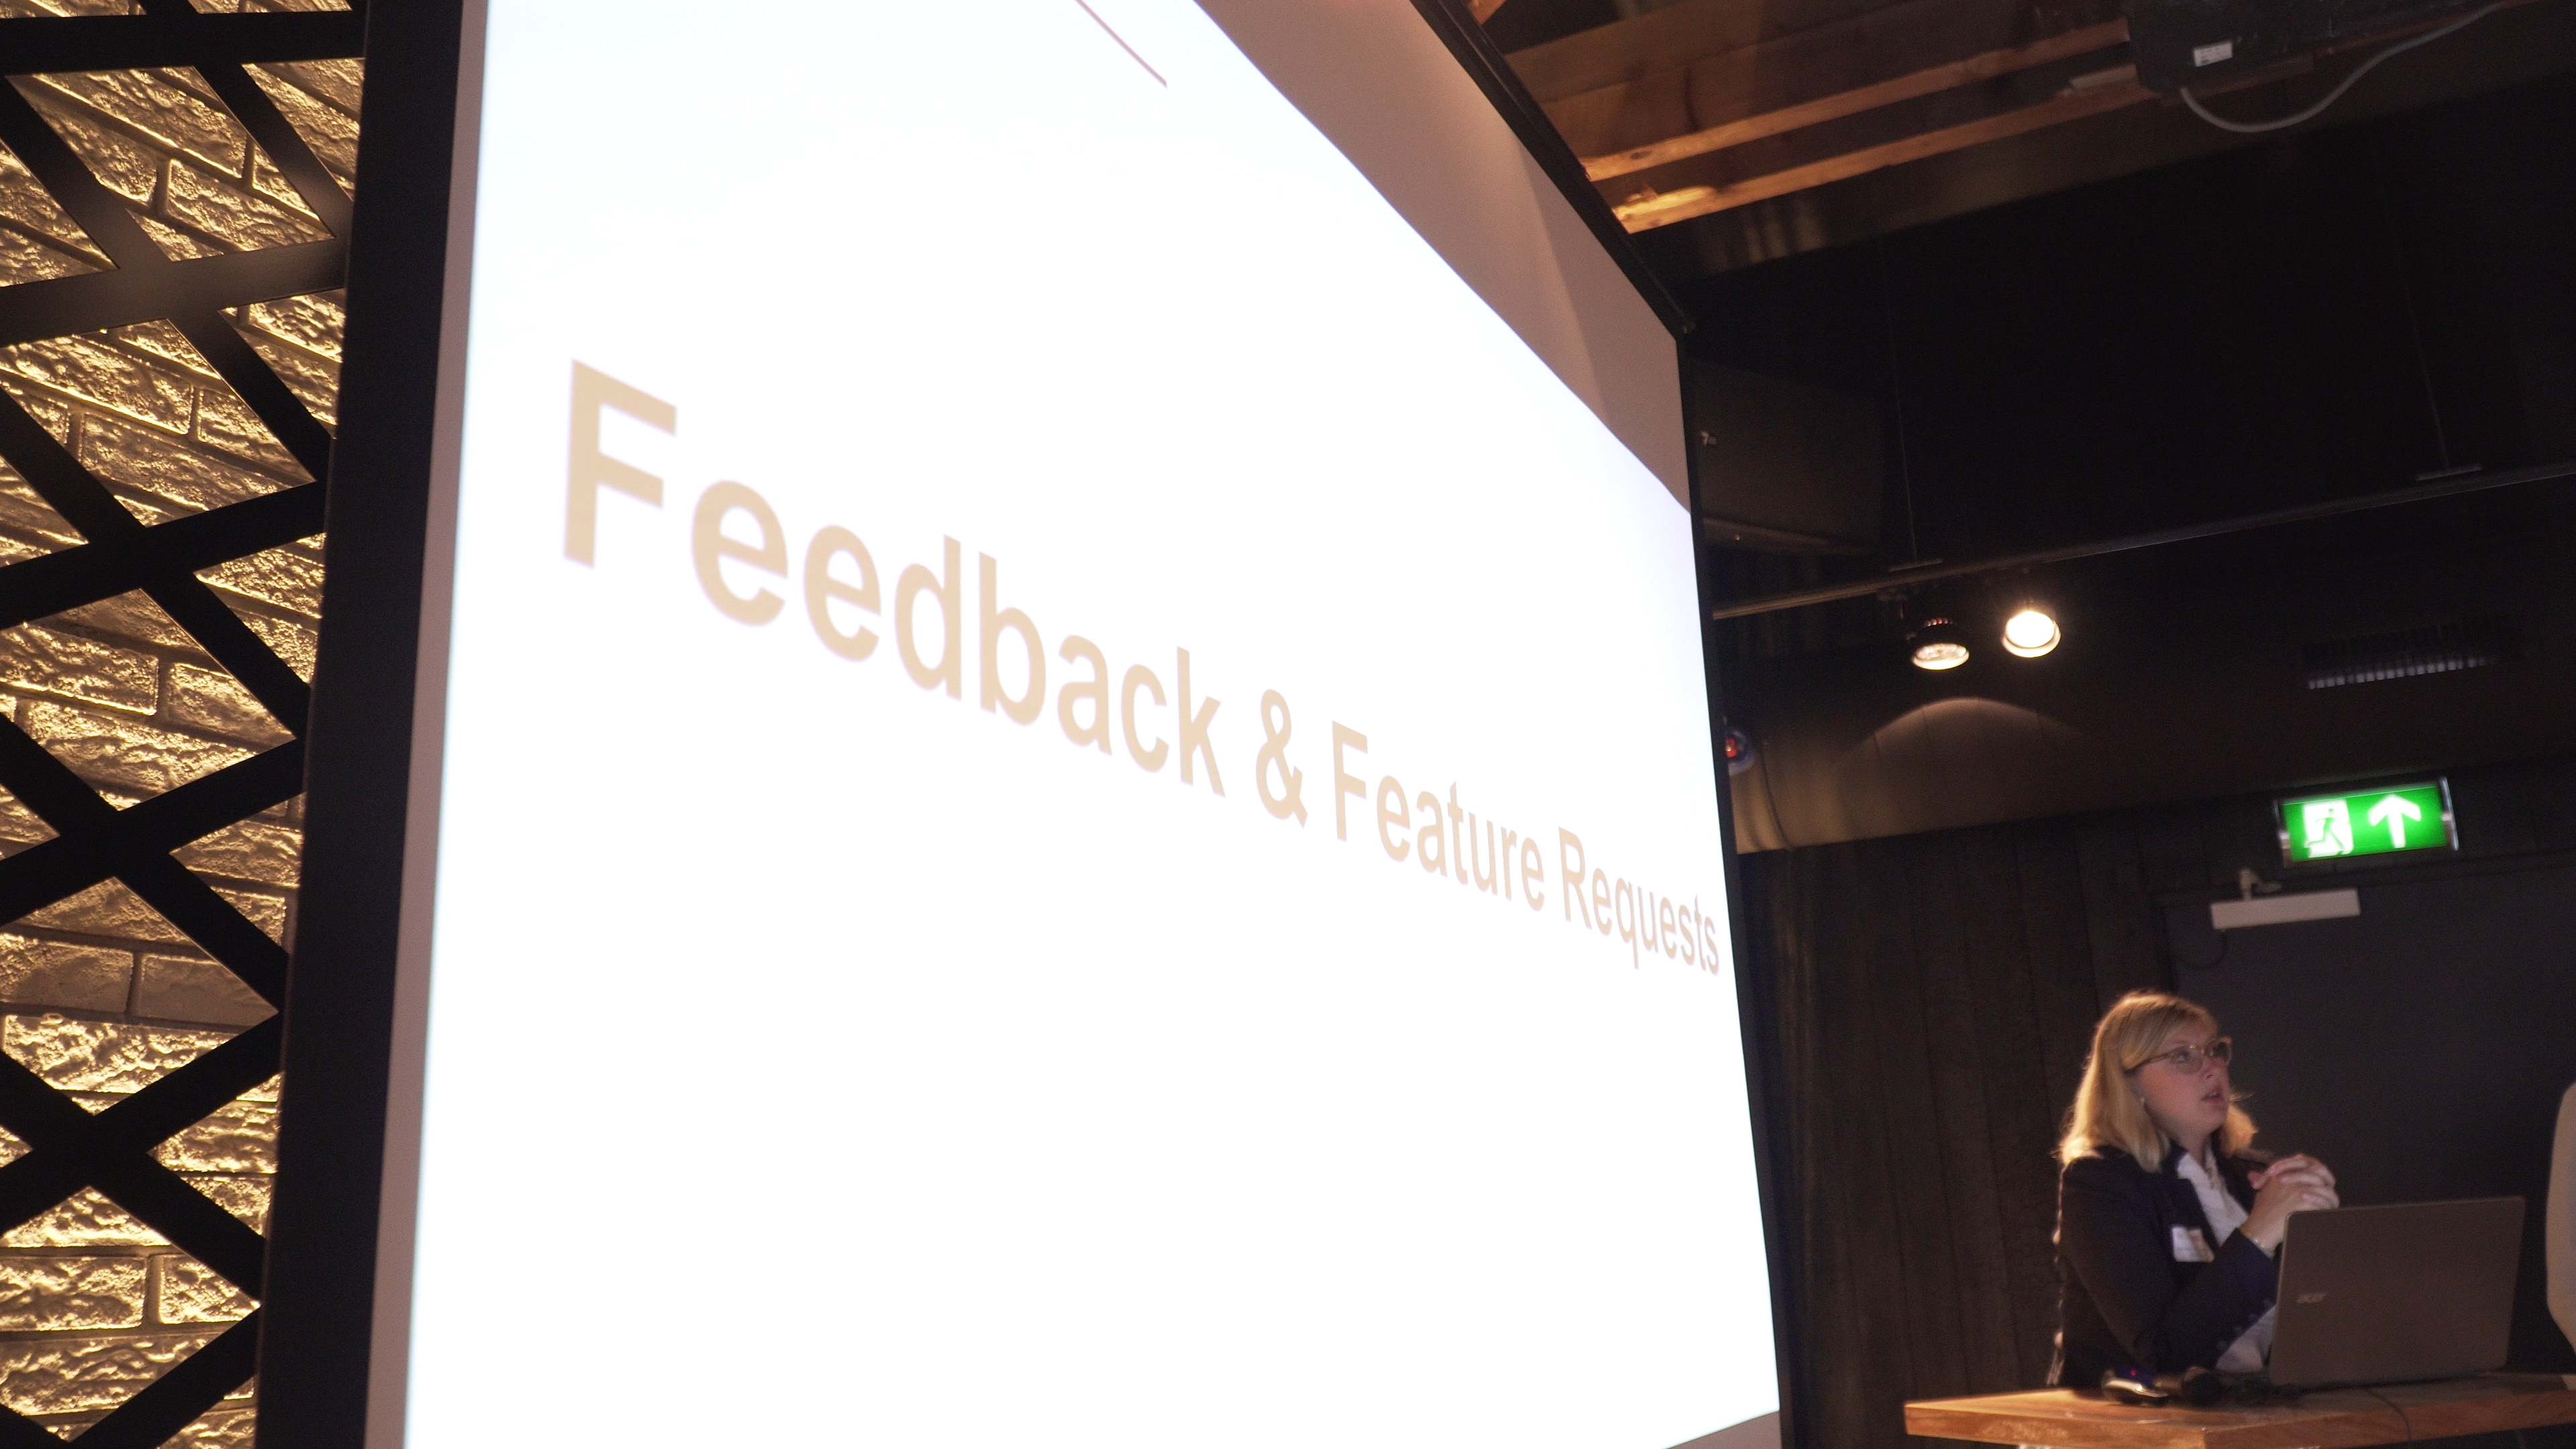 Feedback & Feature Request Ronde